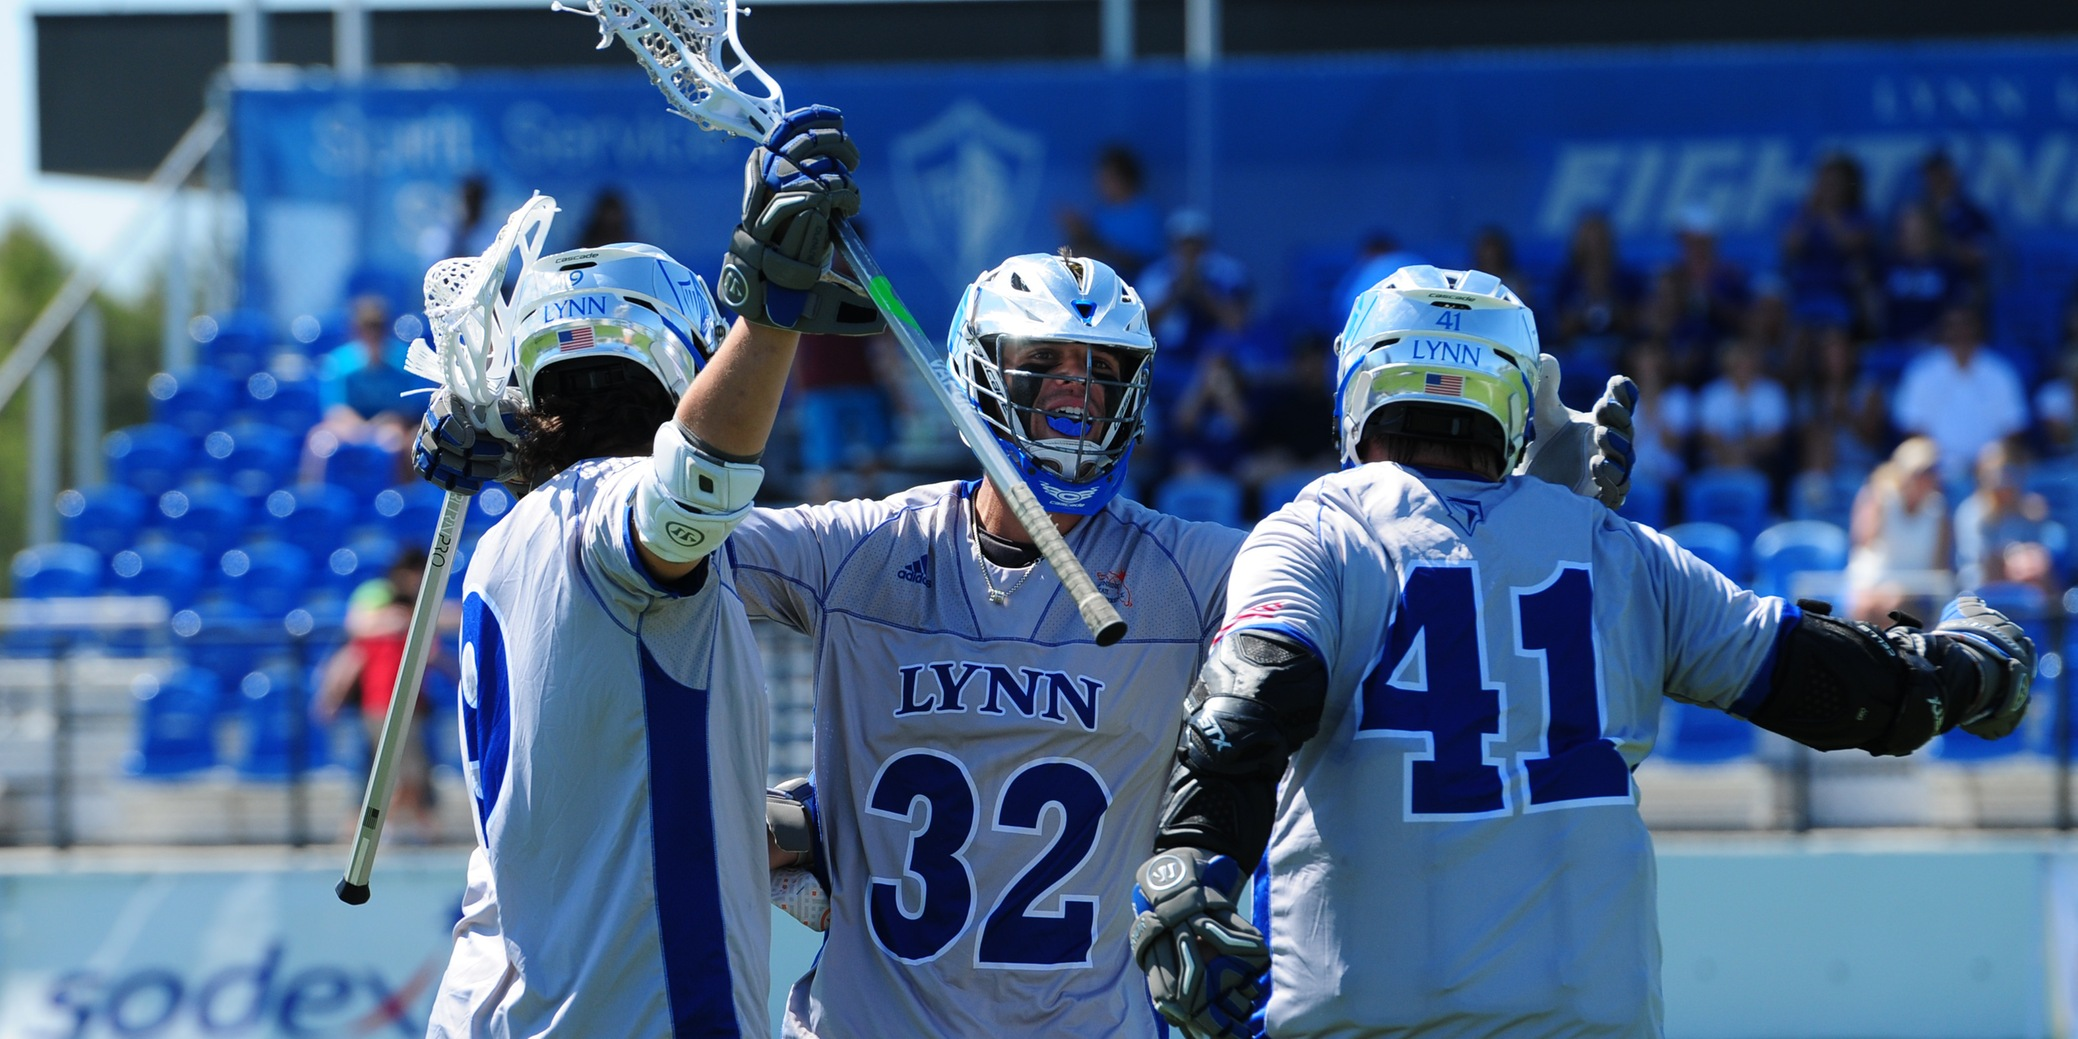 Late Third-Quarter Run Leads Lacrosse to Revenge Victory over Wingate